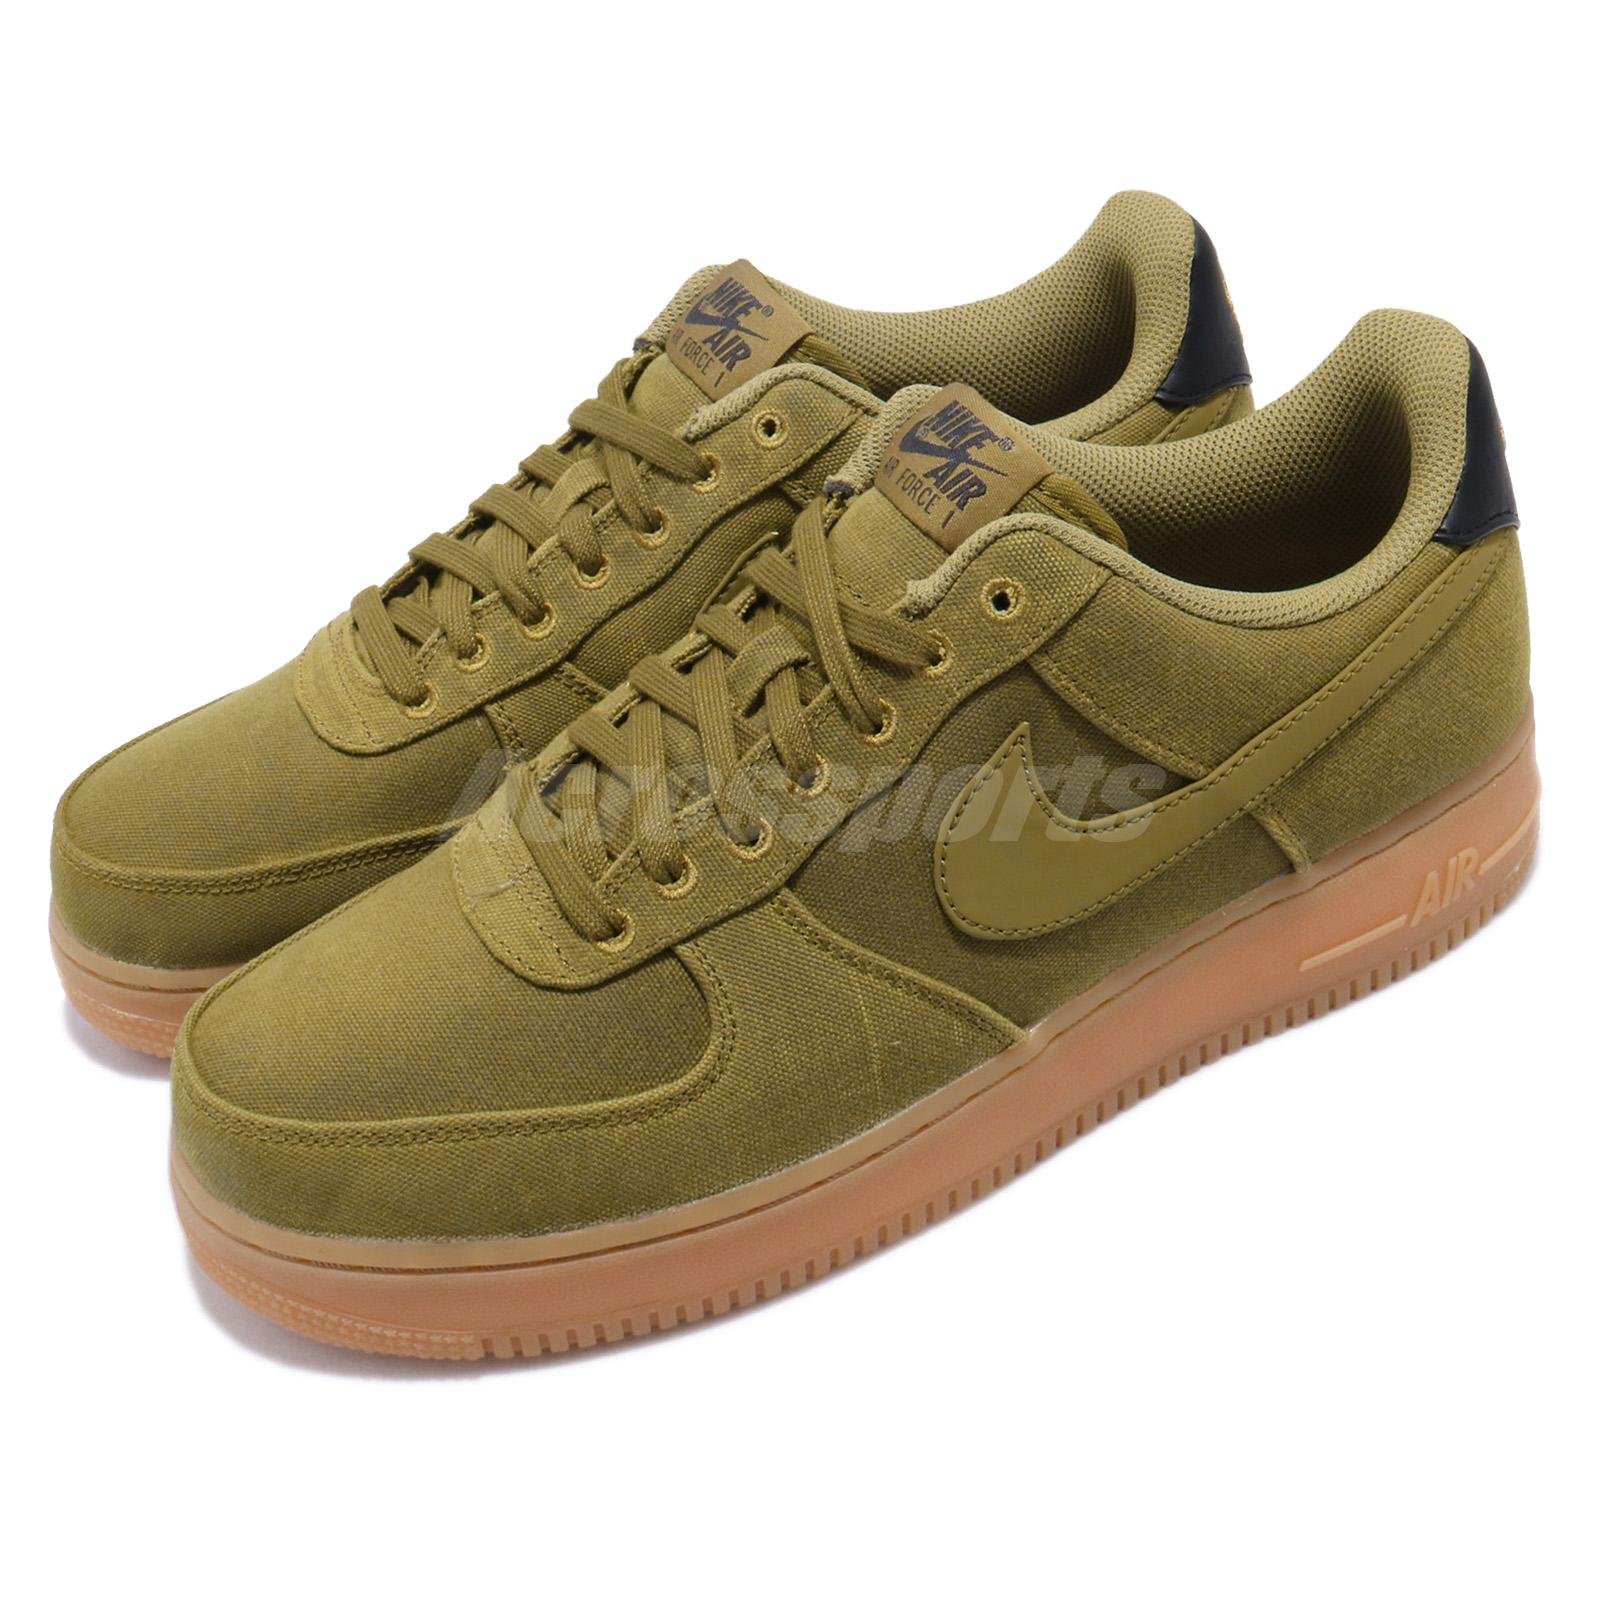 online retailer 2dd92 bf7bb Details about Nike Air Force 1 07 LV8 Style Camper Green Gum Brown Mens AF1  Shoes AQ0117-300